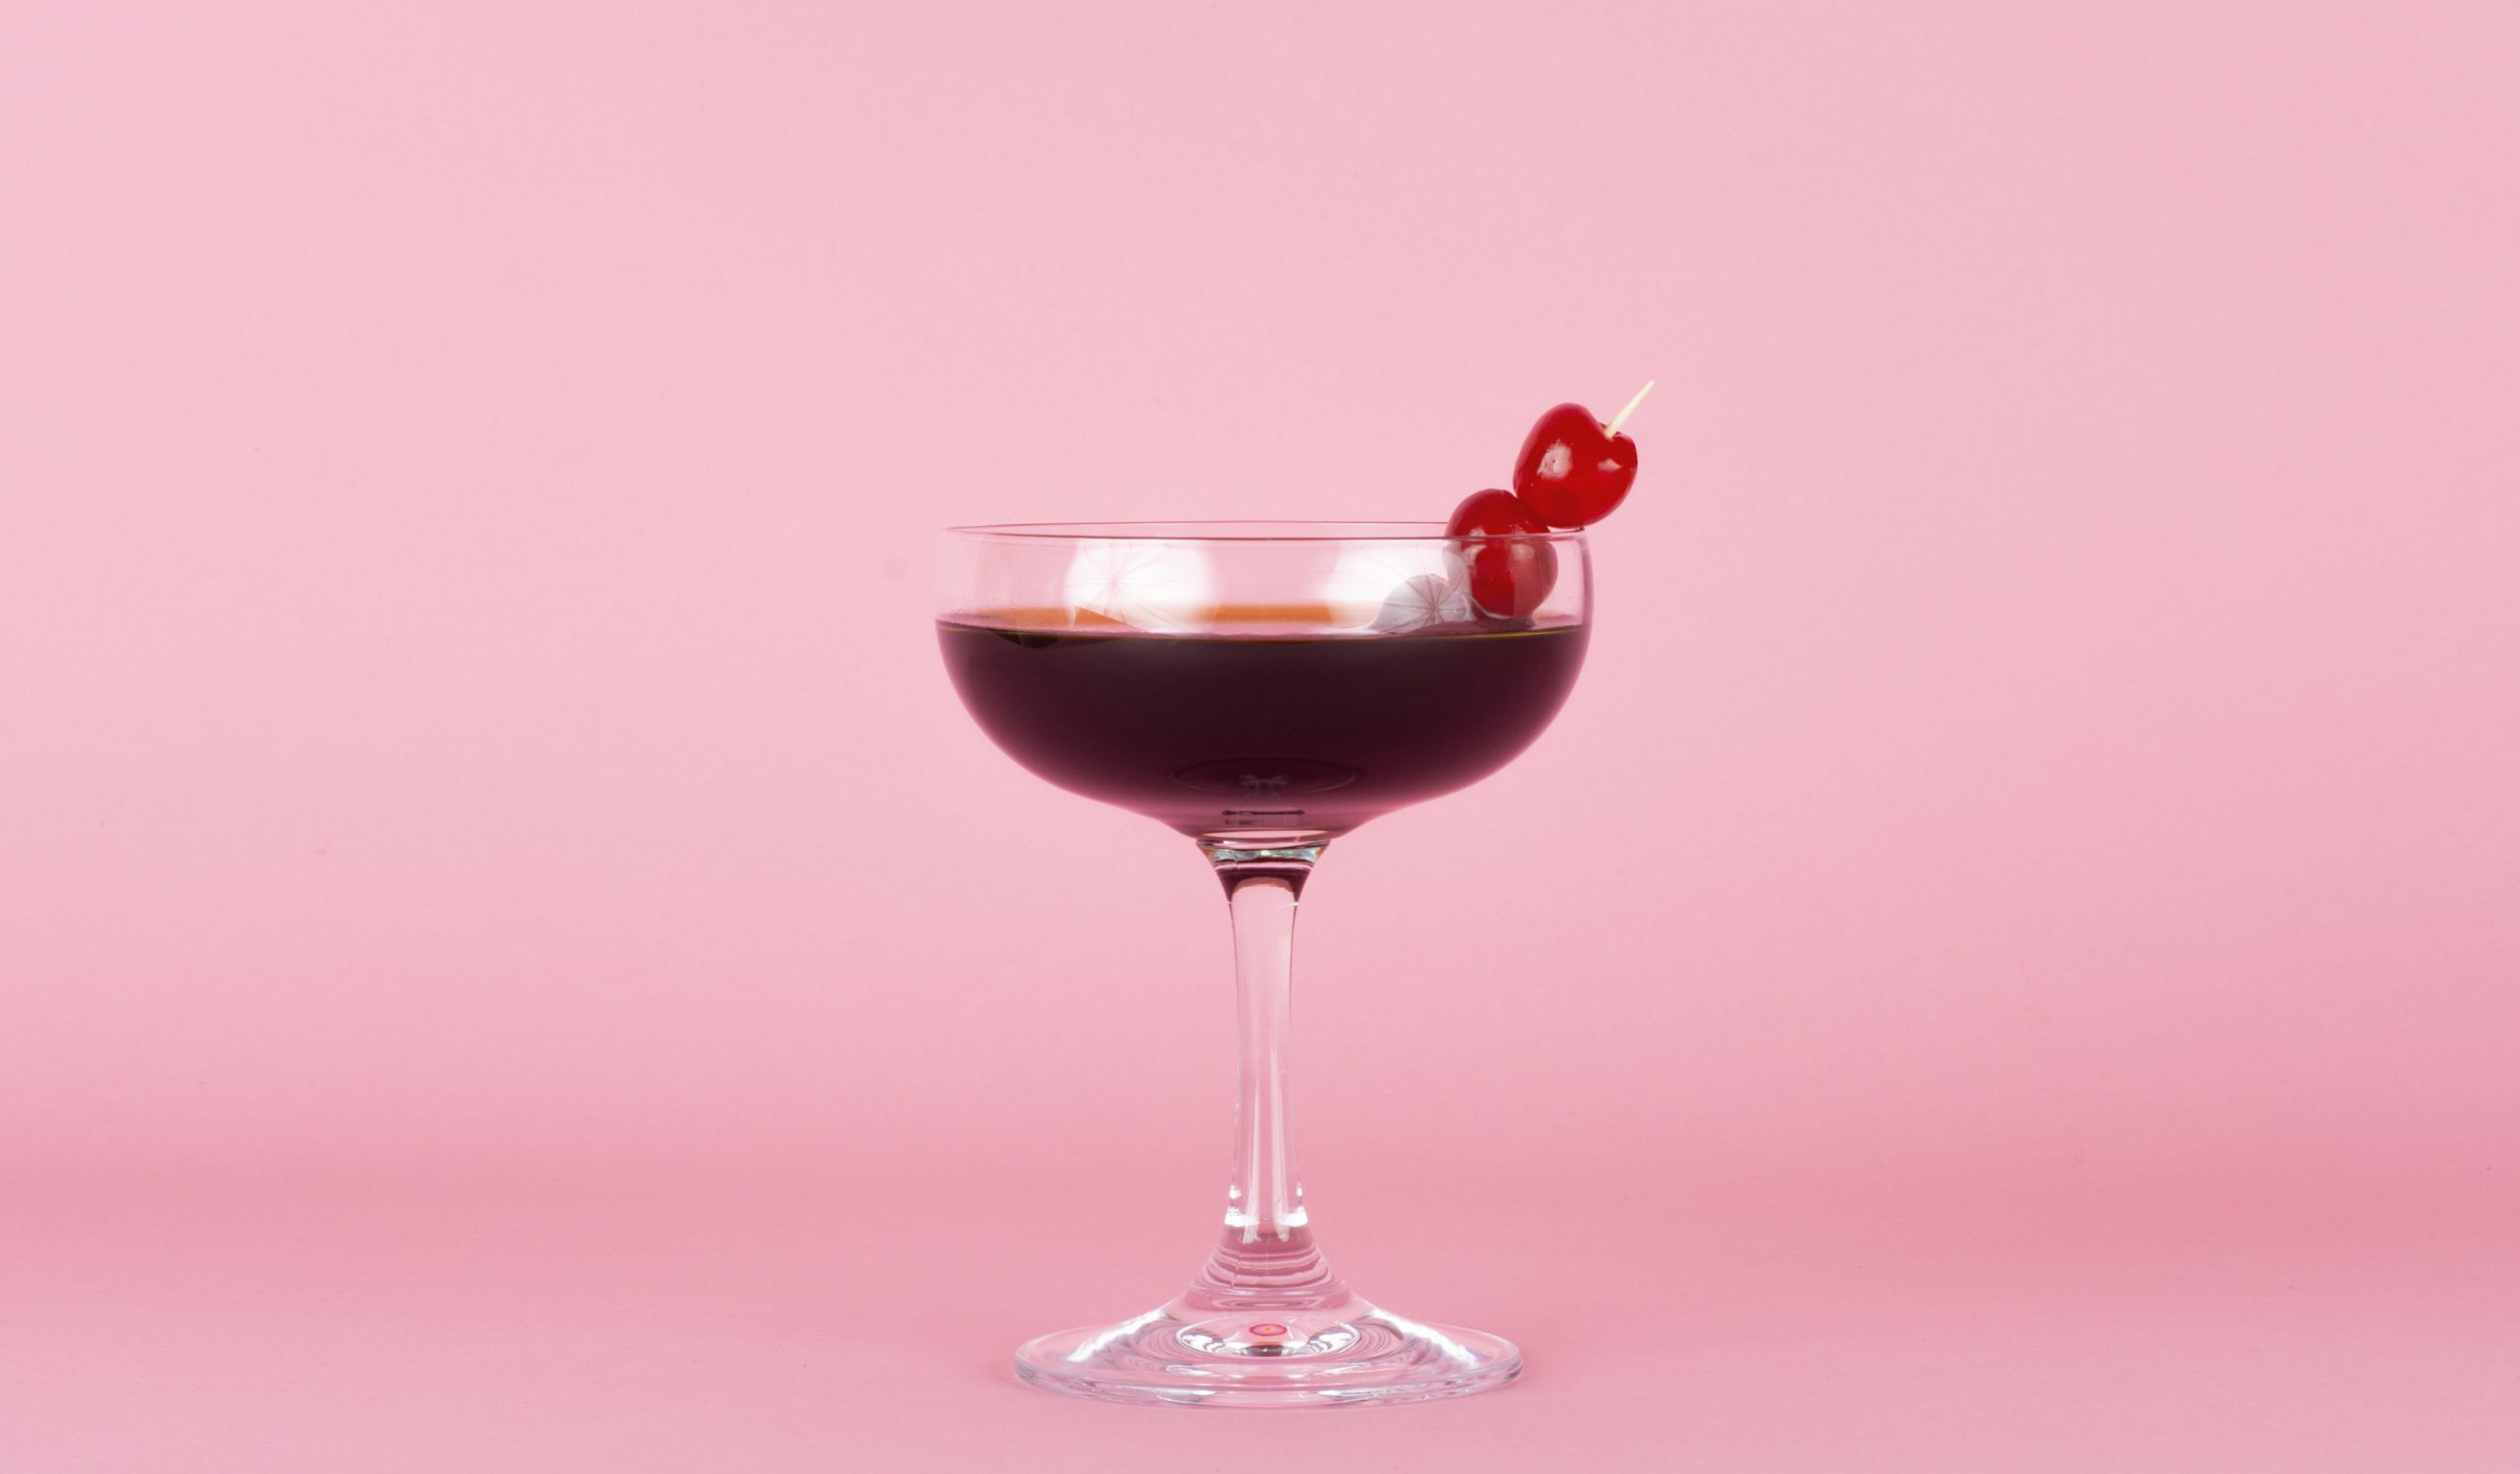 Glass of a Martini drink made with coffee in a pink background